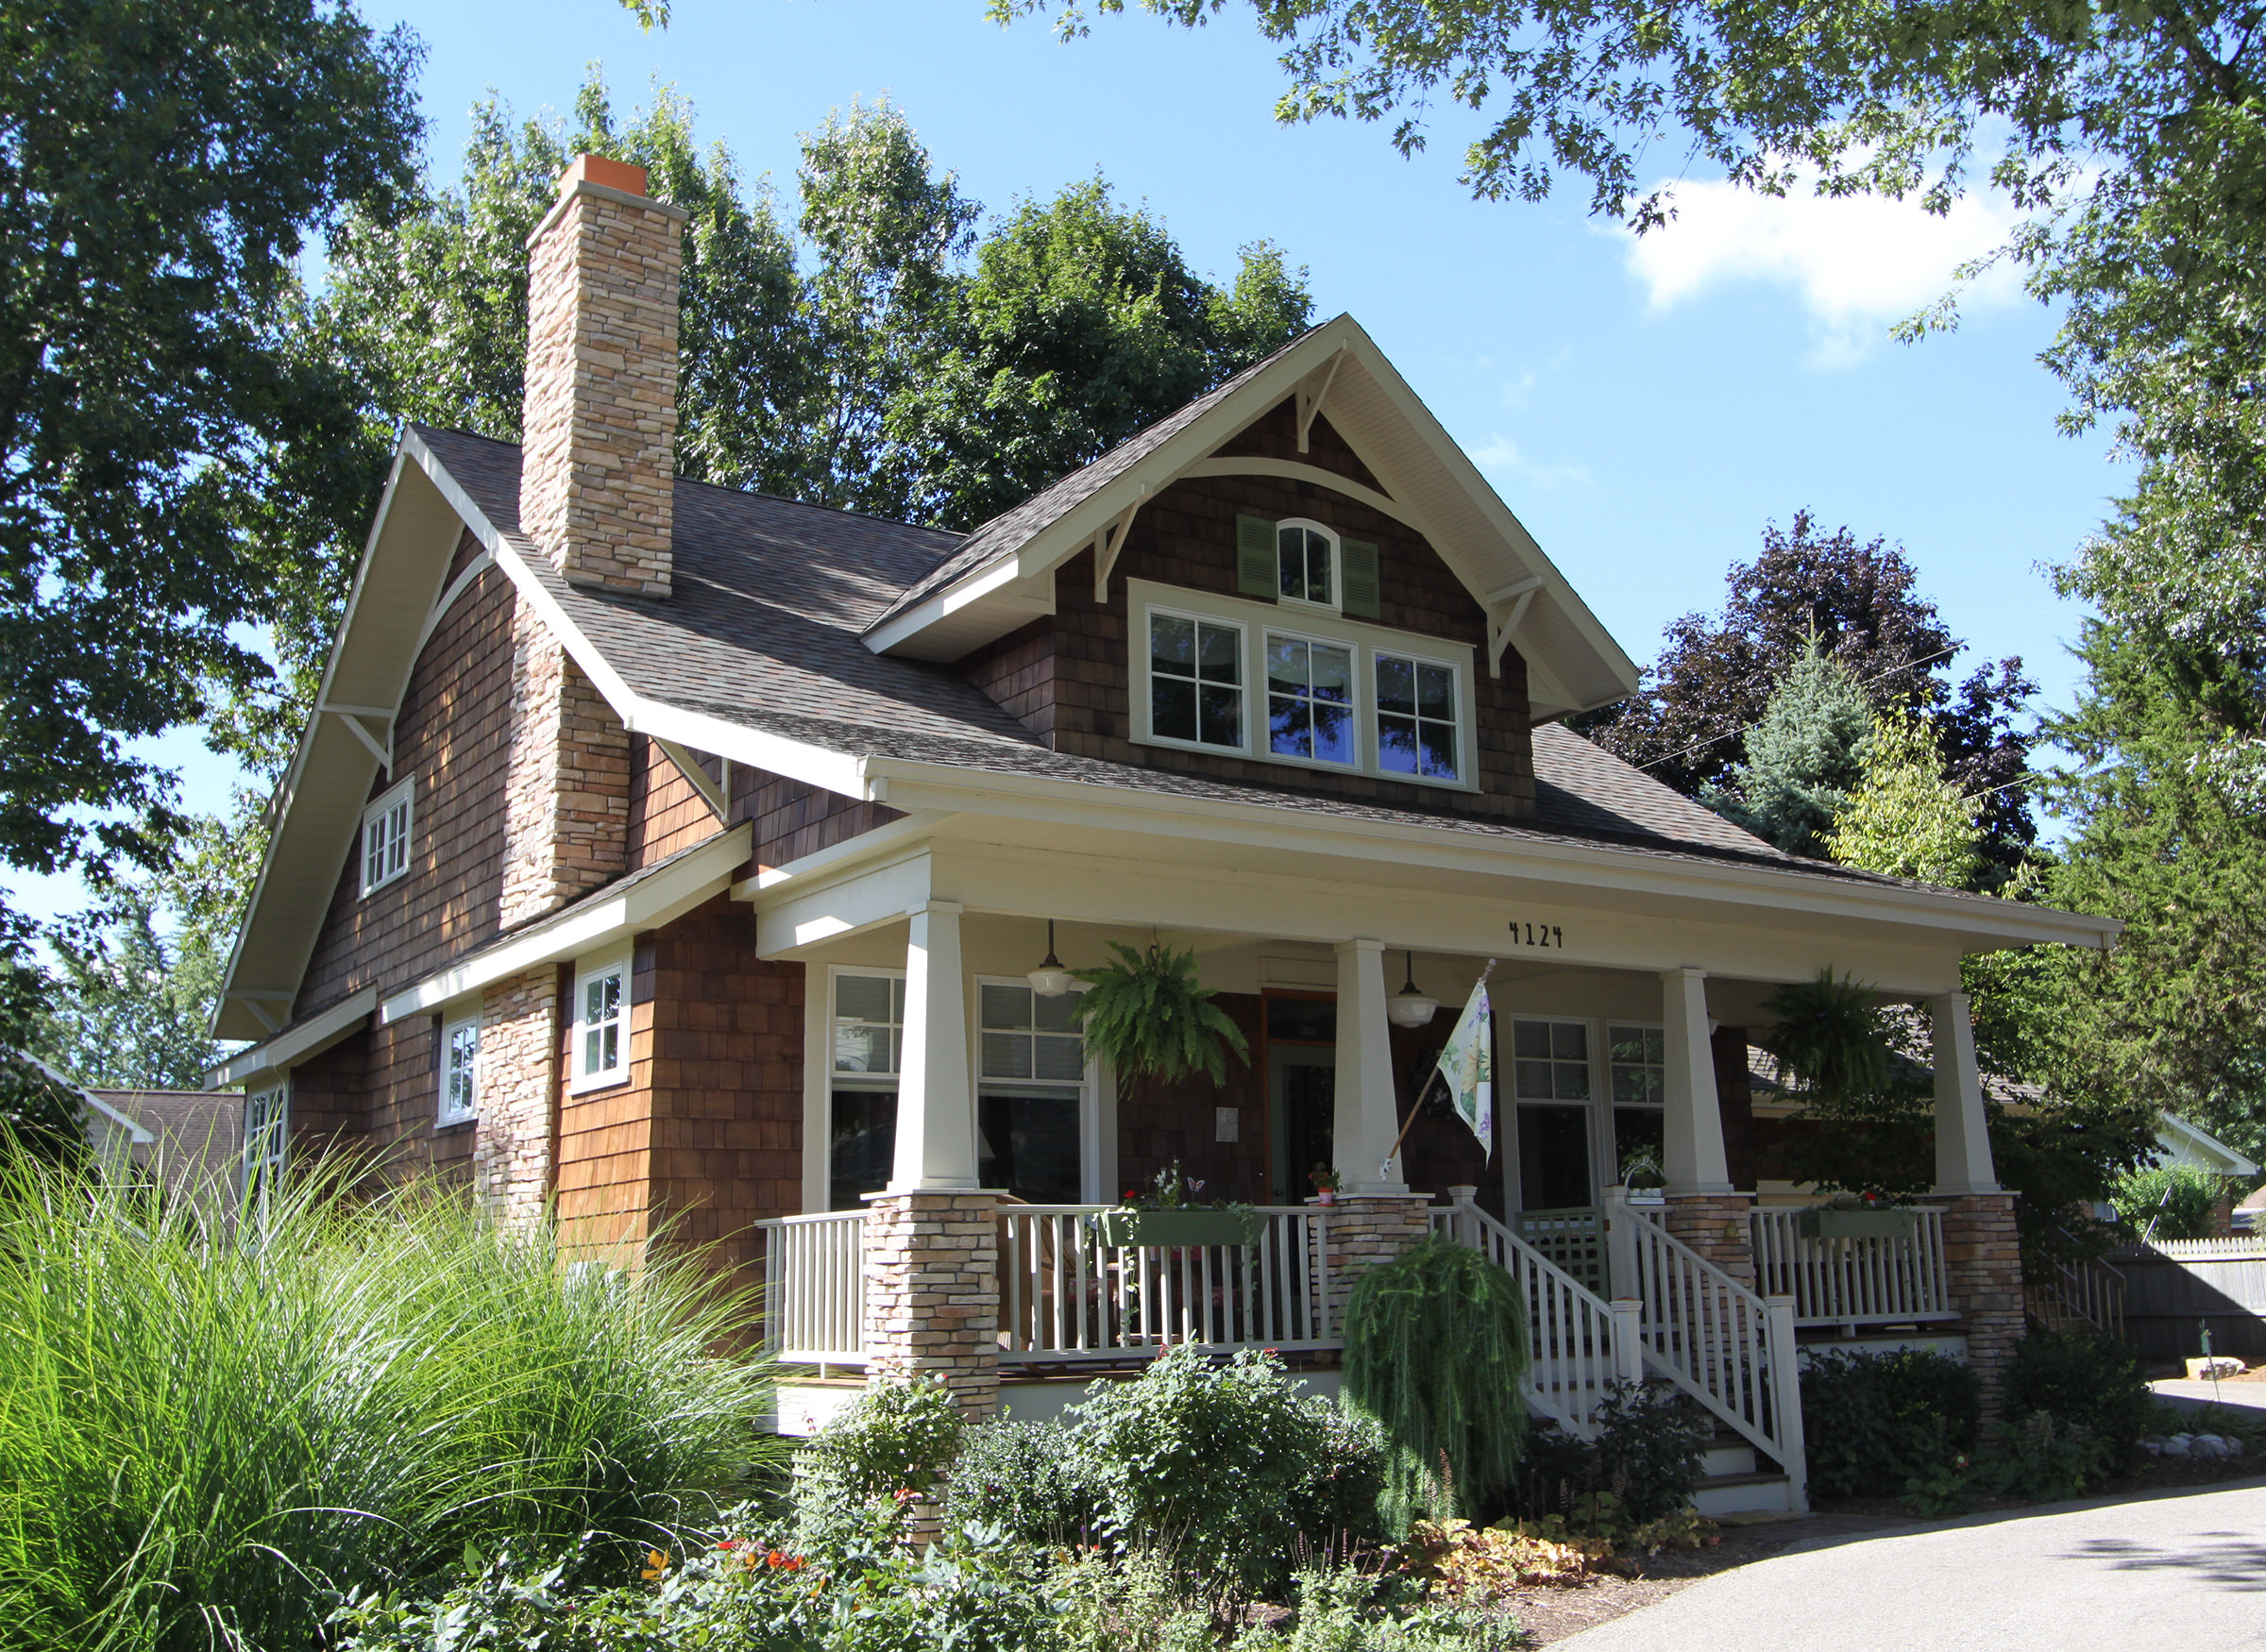 32 types of architectural styles for the home modern for Craftsman style architects